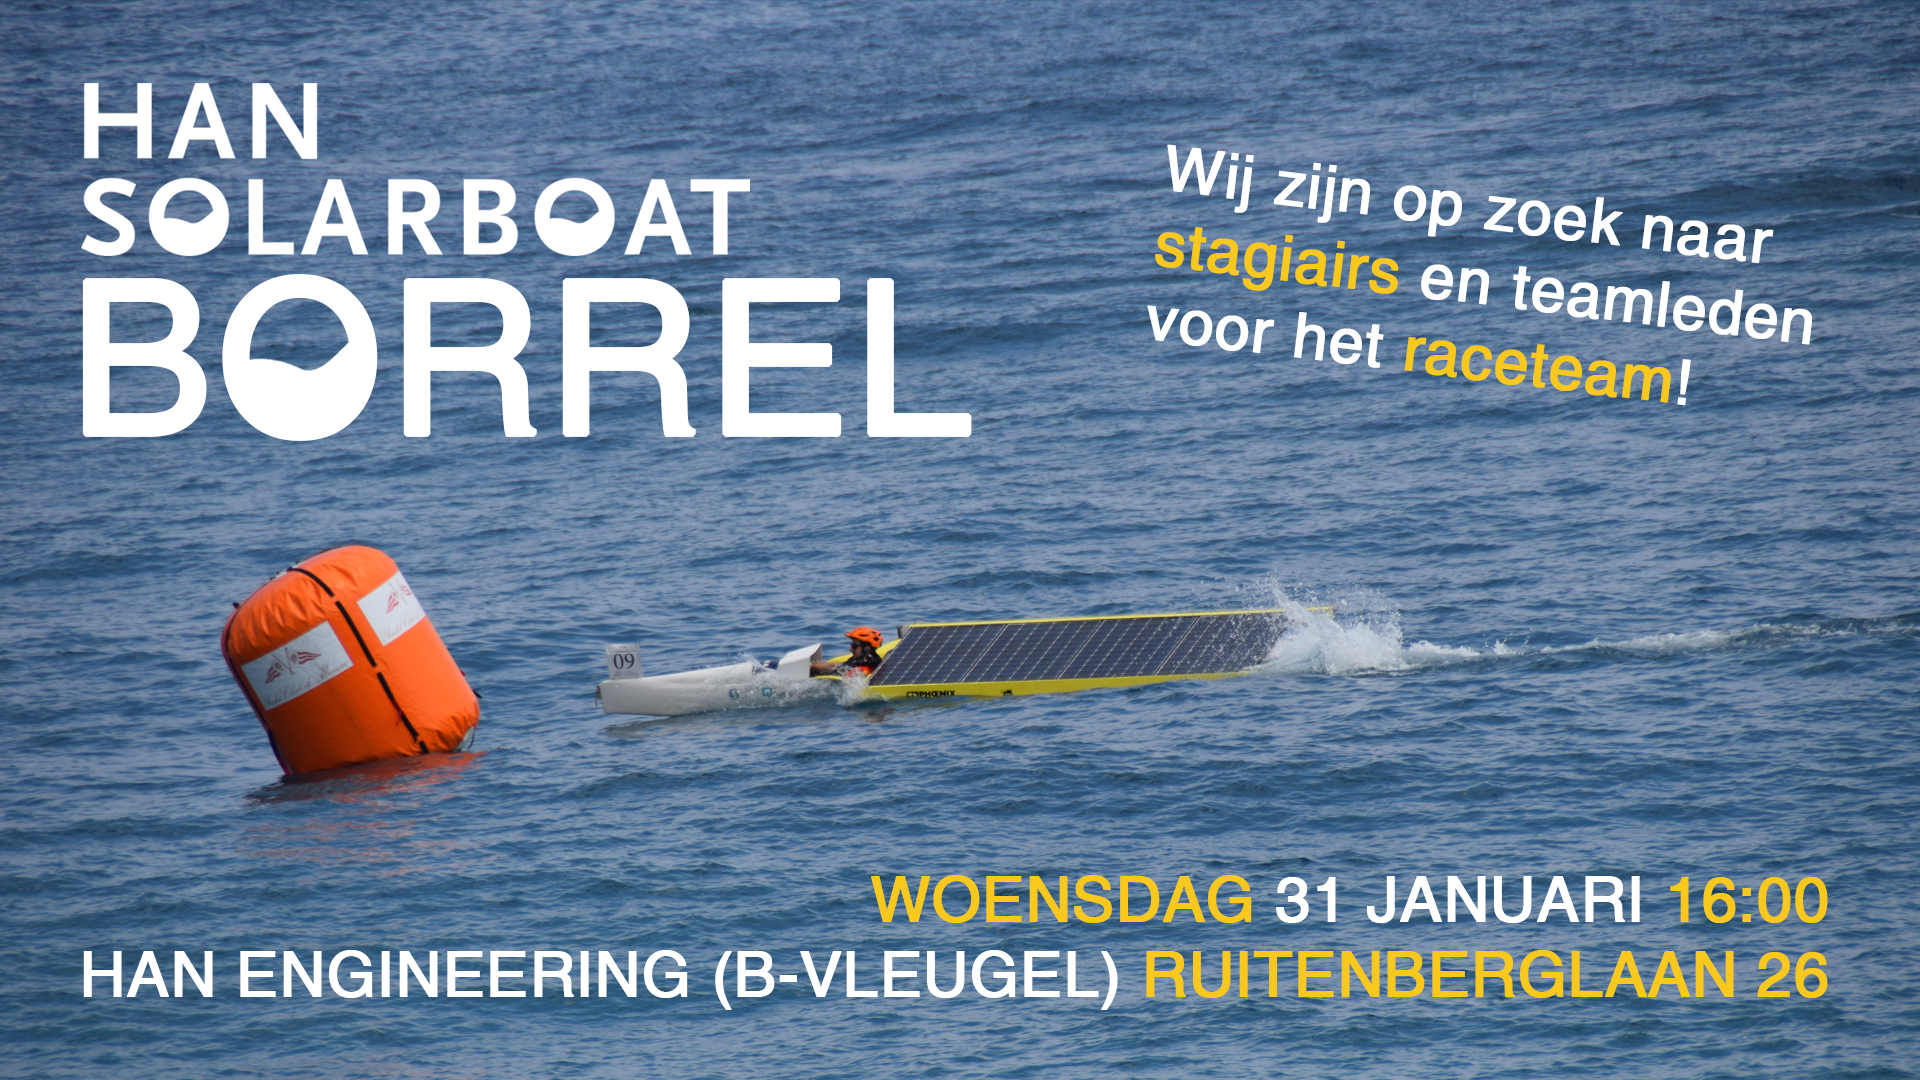 HAN Solarboat Borrel